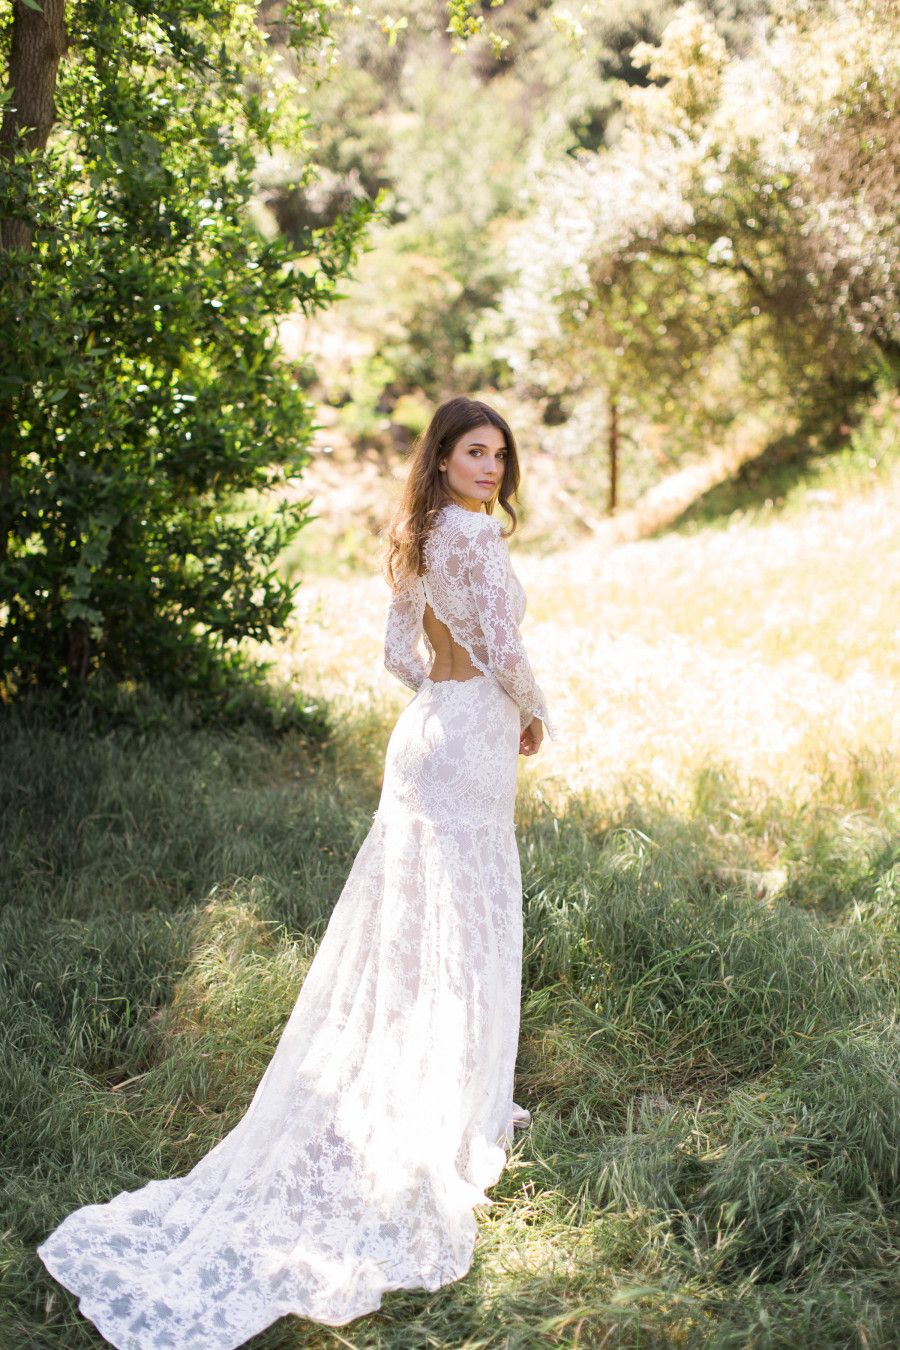 Calling All The Cool Brides Long Sleeve Wedding Gowns Claire Pettibone Wedding Dress Wedding Dress Photography